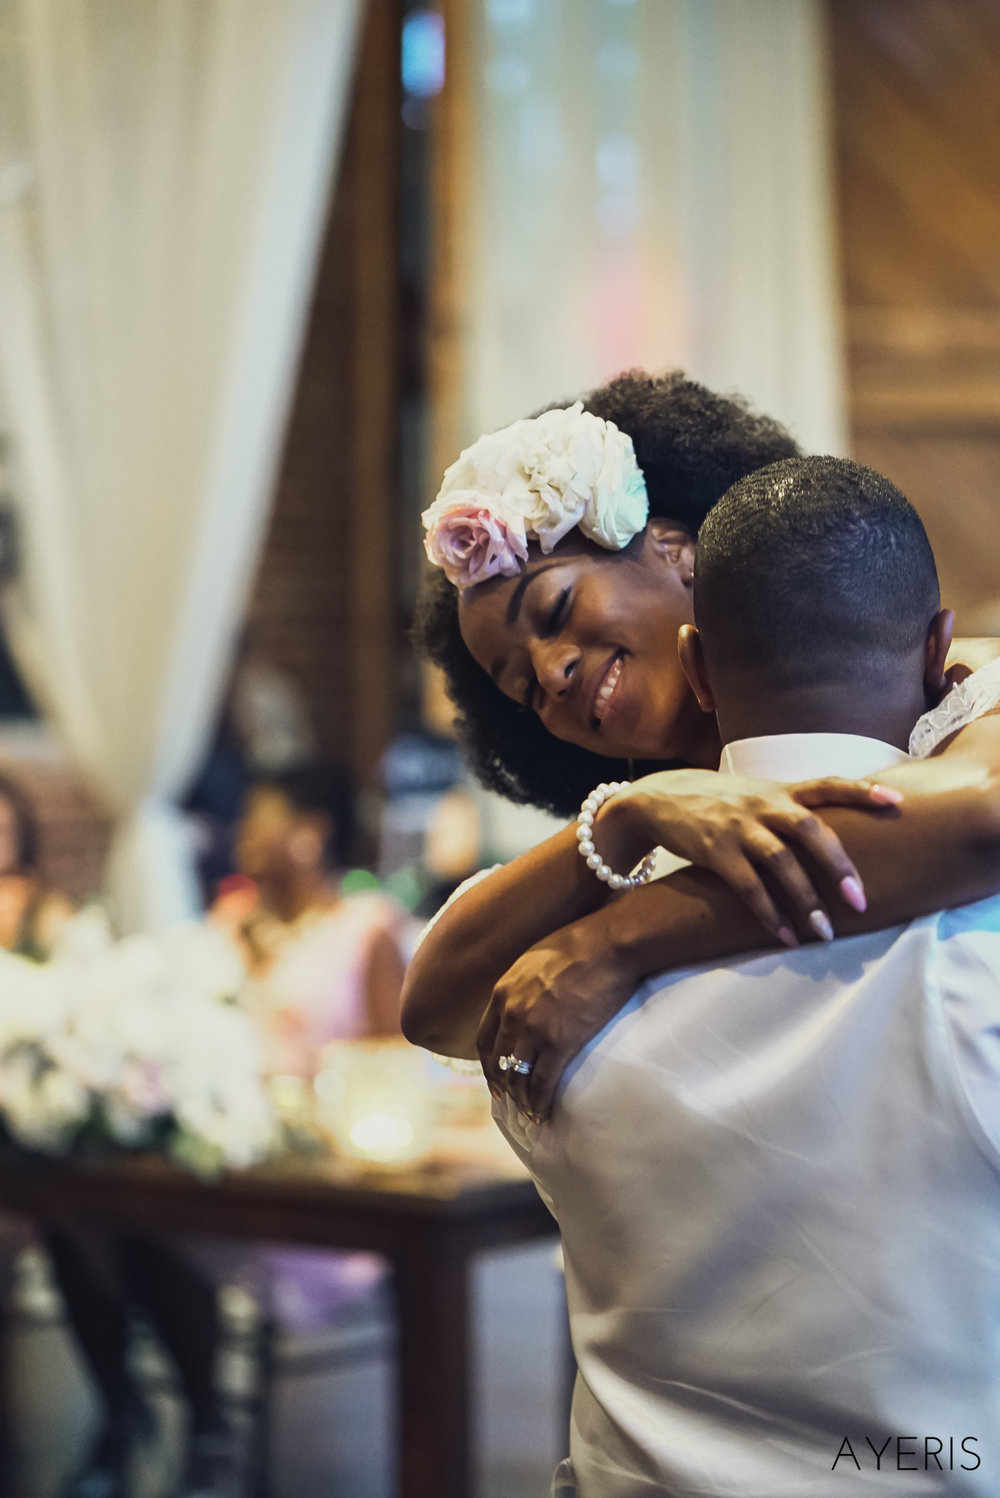 Andrea+Earl's Atlanta Wedding at The Foundry at Puritan Mill by AYERIS Weddings-36.jpg